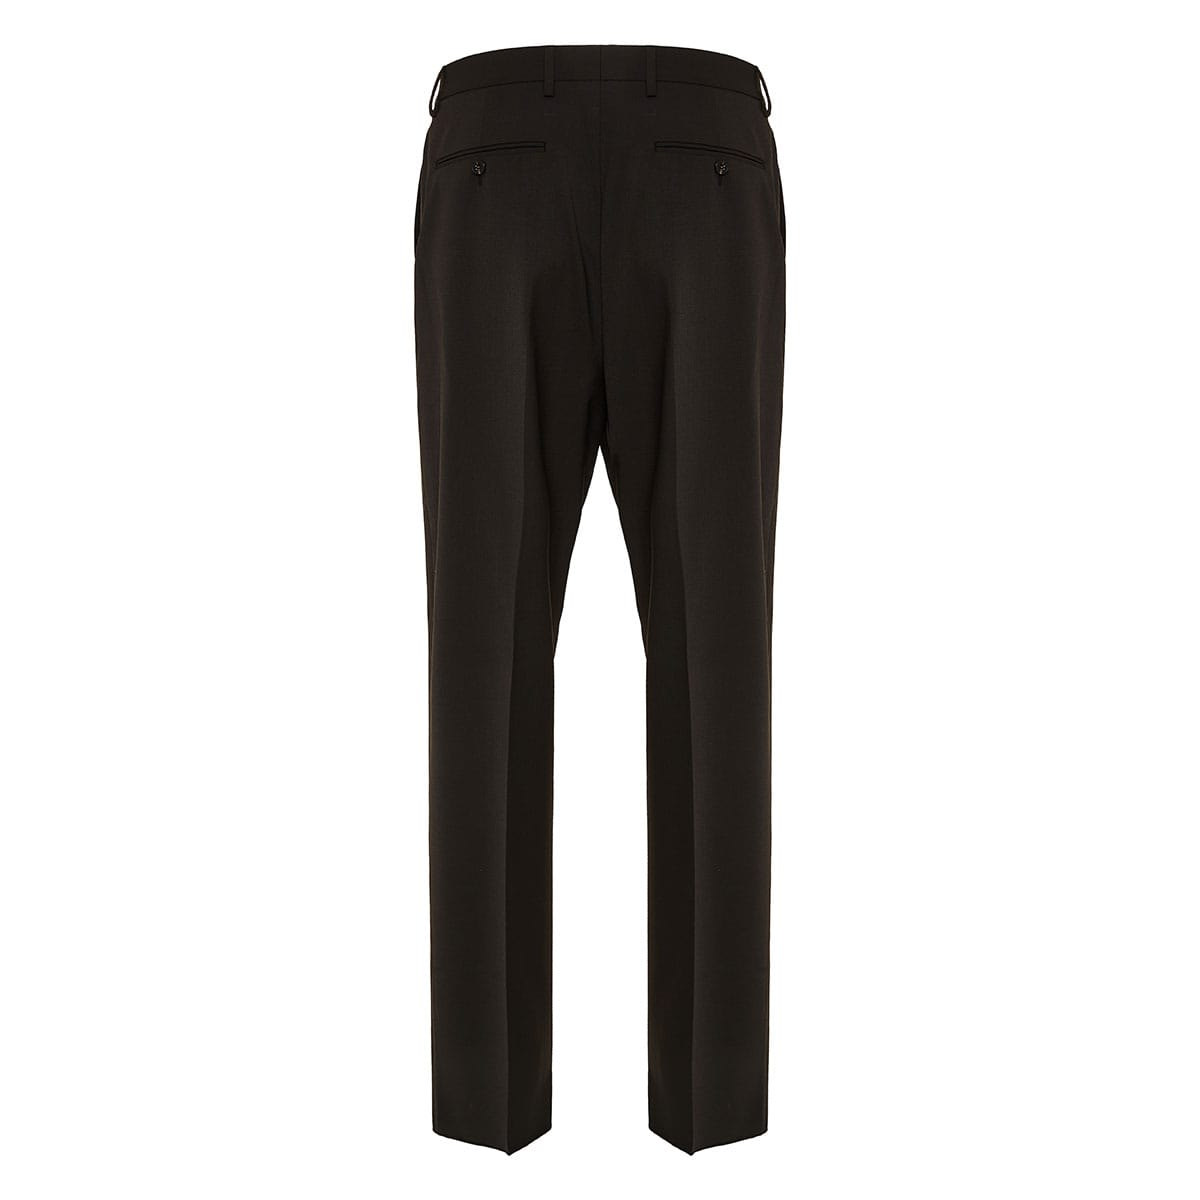 Tailored trousers with waist tie